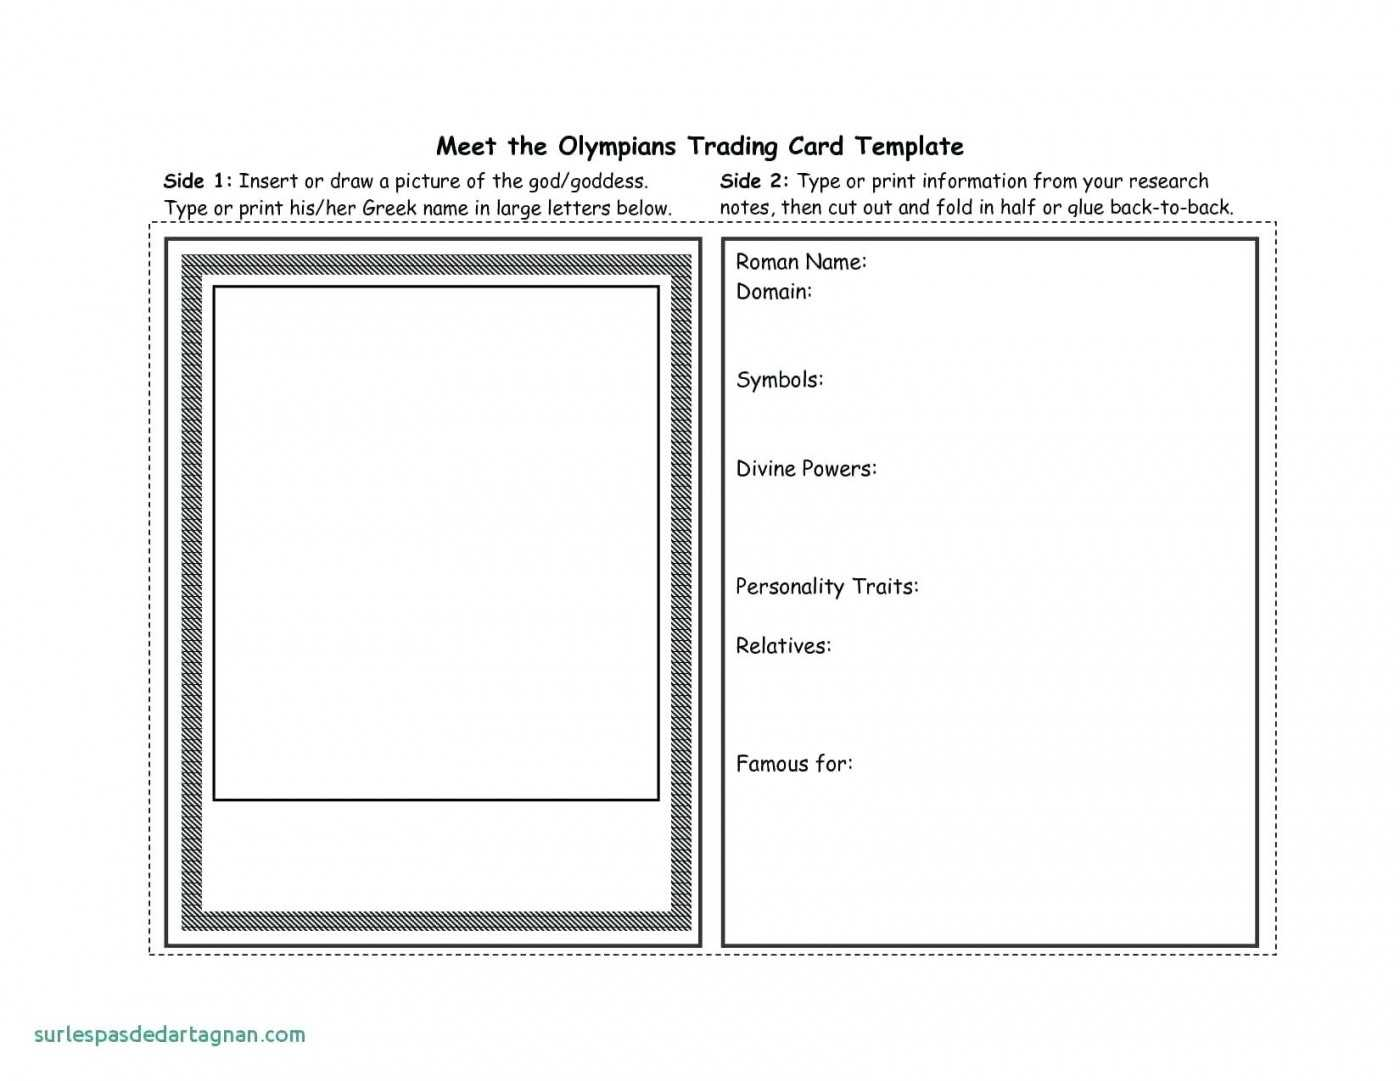 011 Baseball Trading Card Template Free Download Ideas throughout Trading Cards Templates Free Download